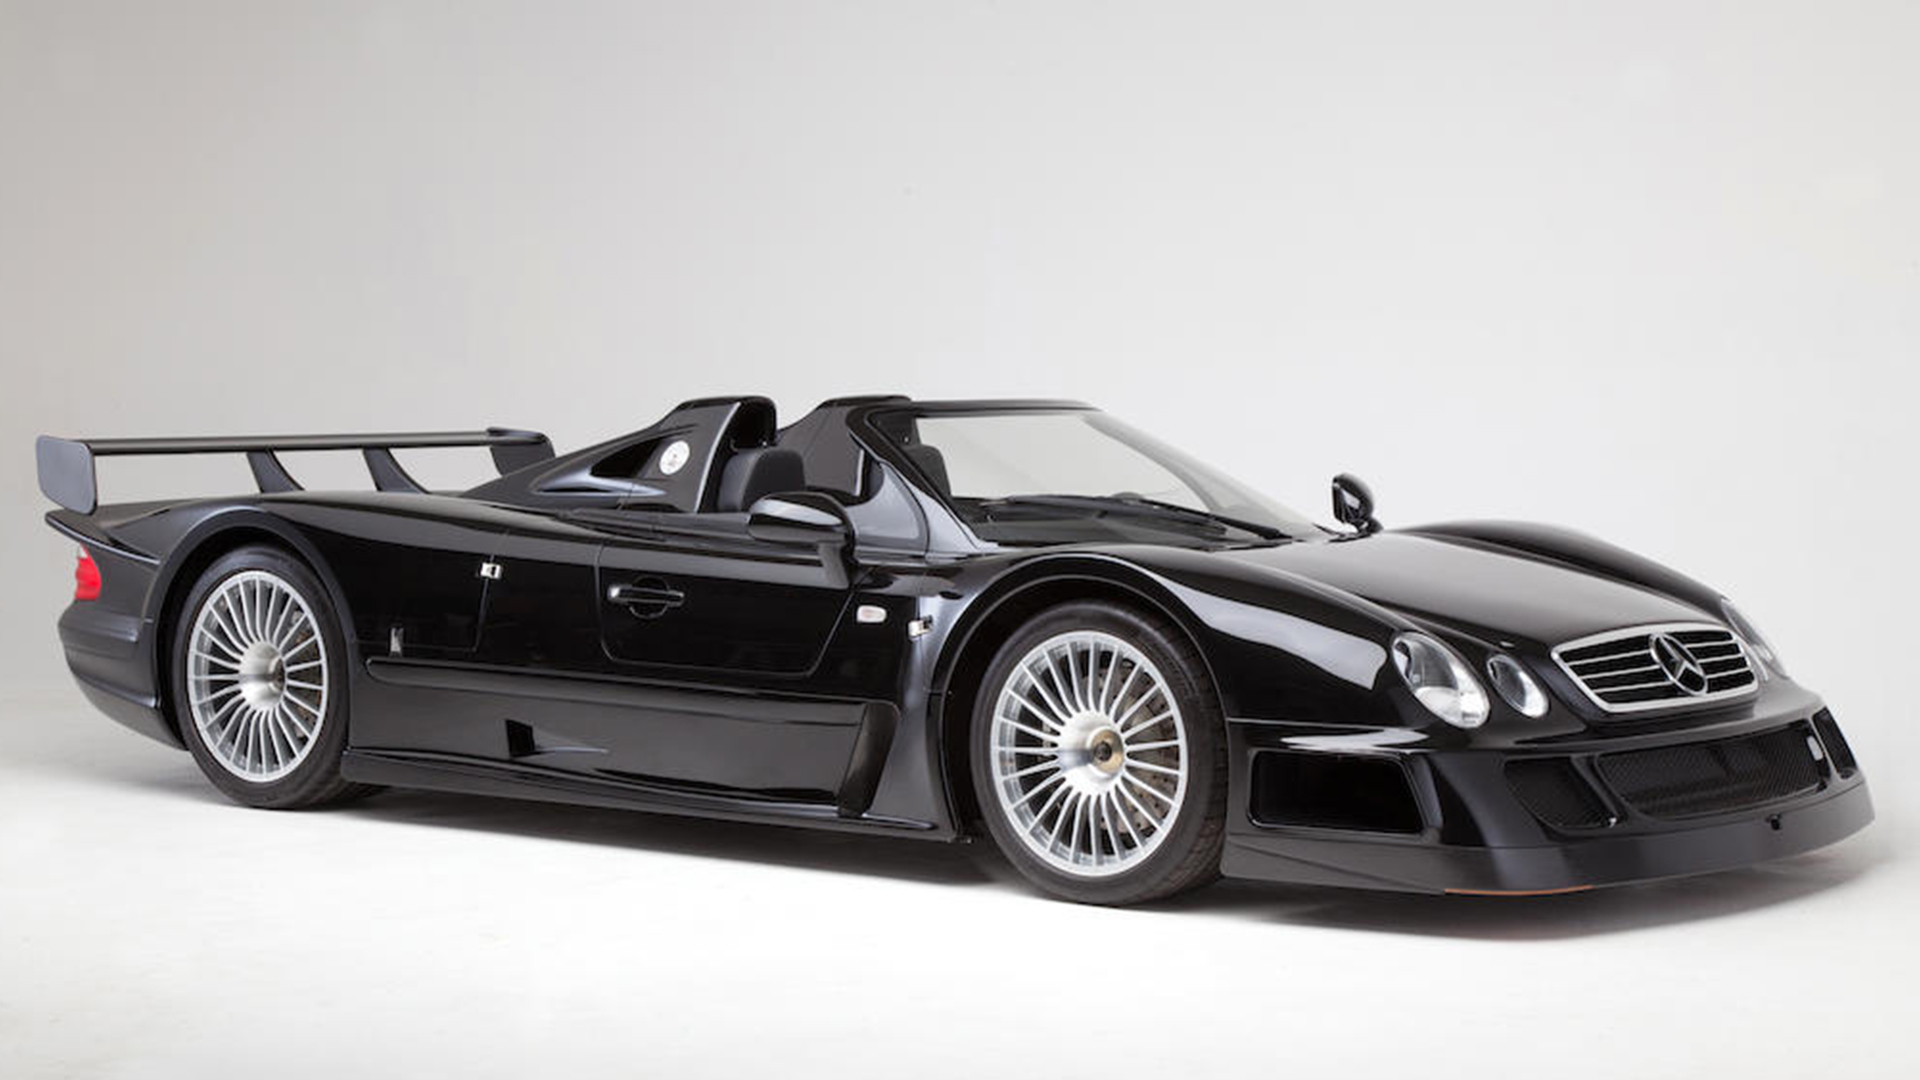 Porsche 911 Gt1 And Mercedes Benz Clk Gtr Faster At Le Mans Or At The Auctions The Classic Car Trust